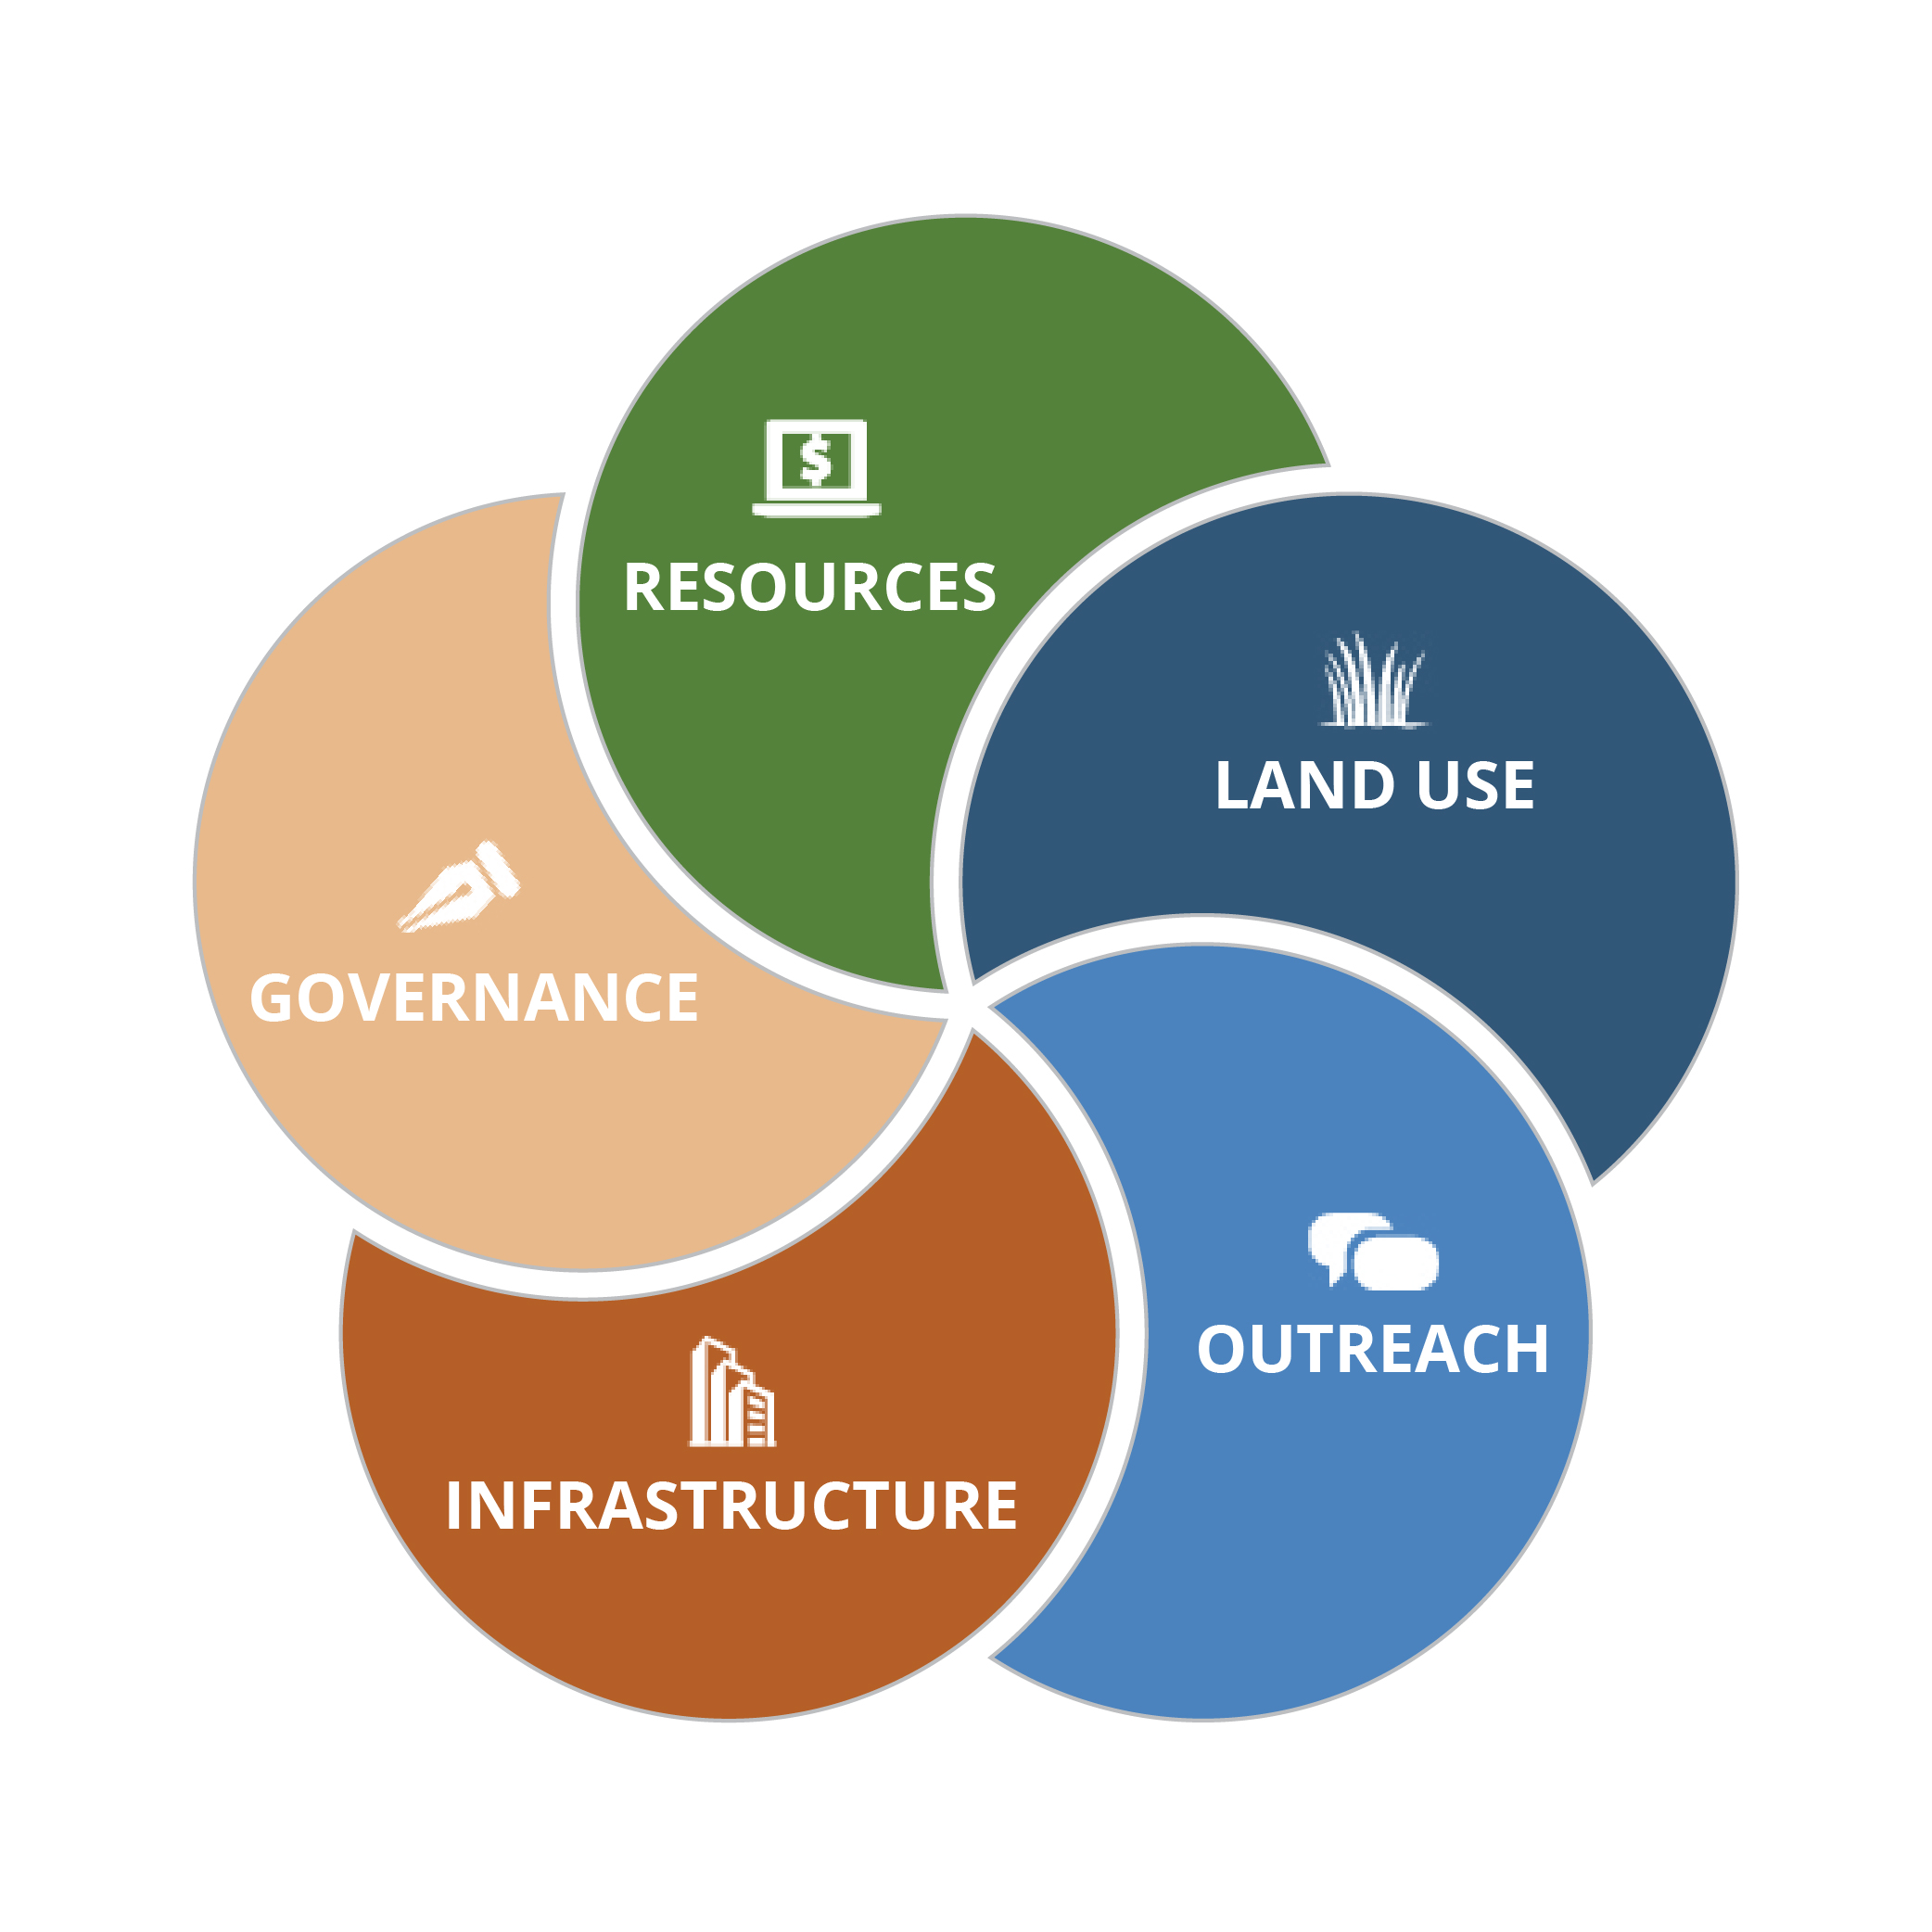 5 Critical Components: Resources, Governance, Infrastructure, Land Use, Outreach